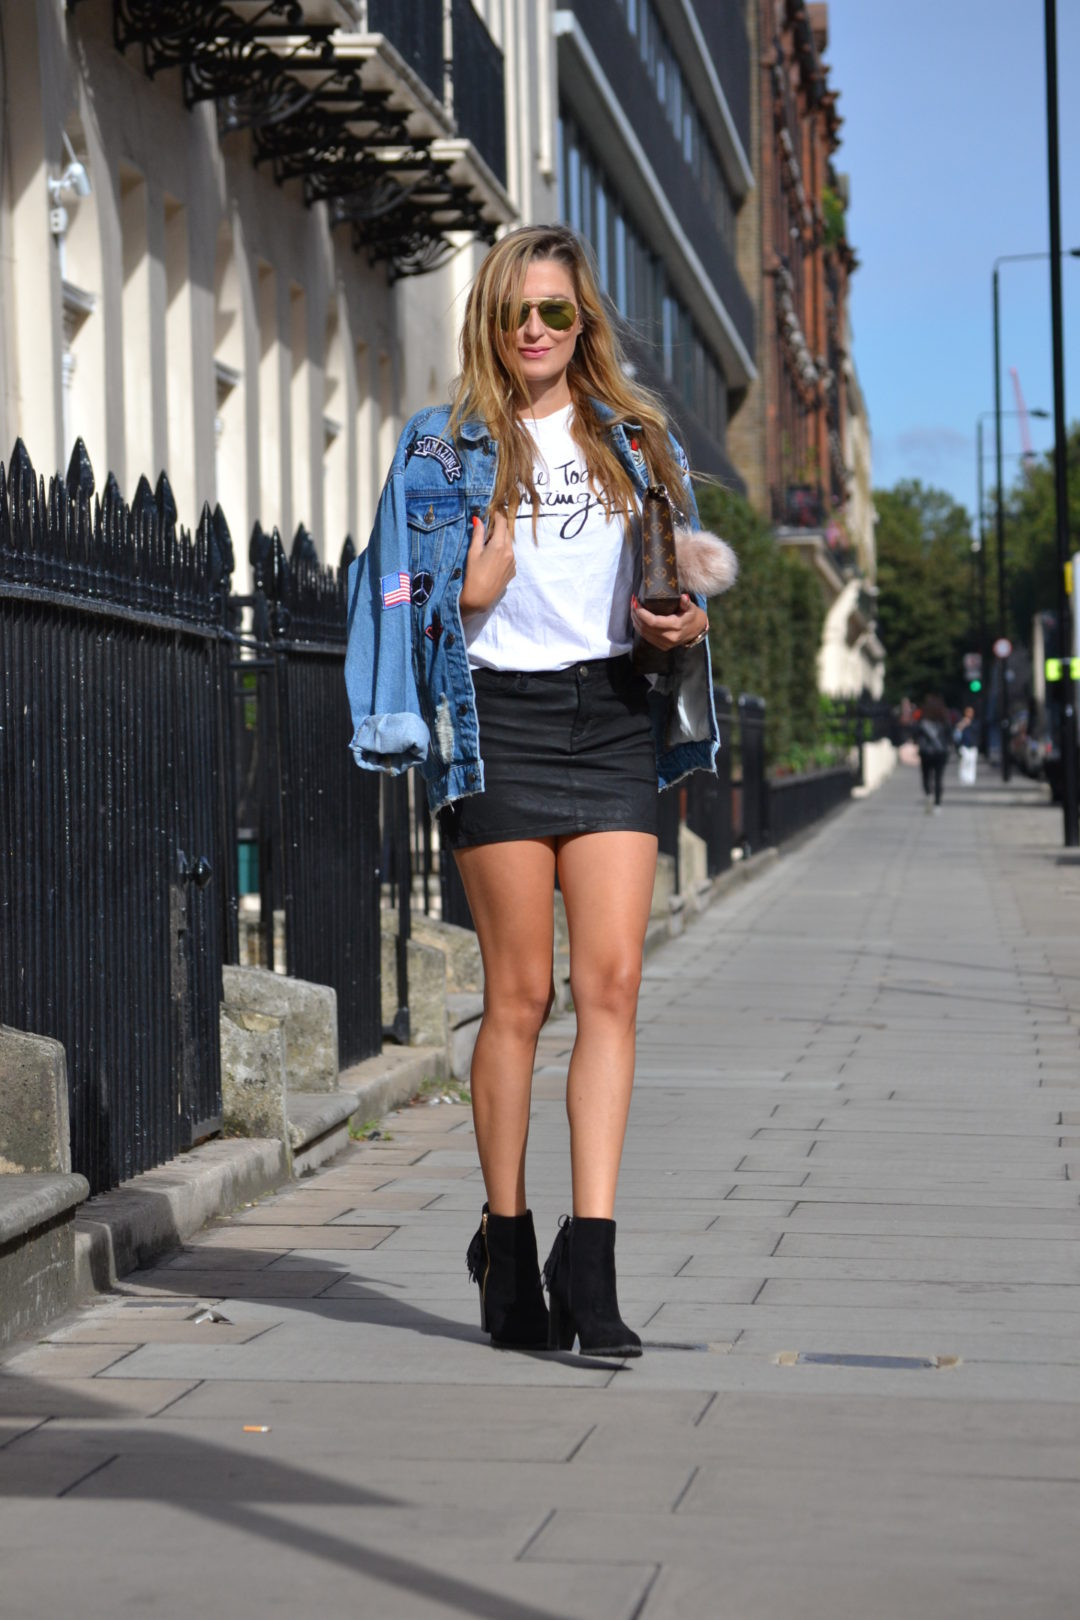 denim_lara_martin_gilarranz_bymyheels_louis_vuitton_eleven_paris_booties_ray_ban_primark-30